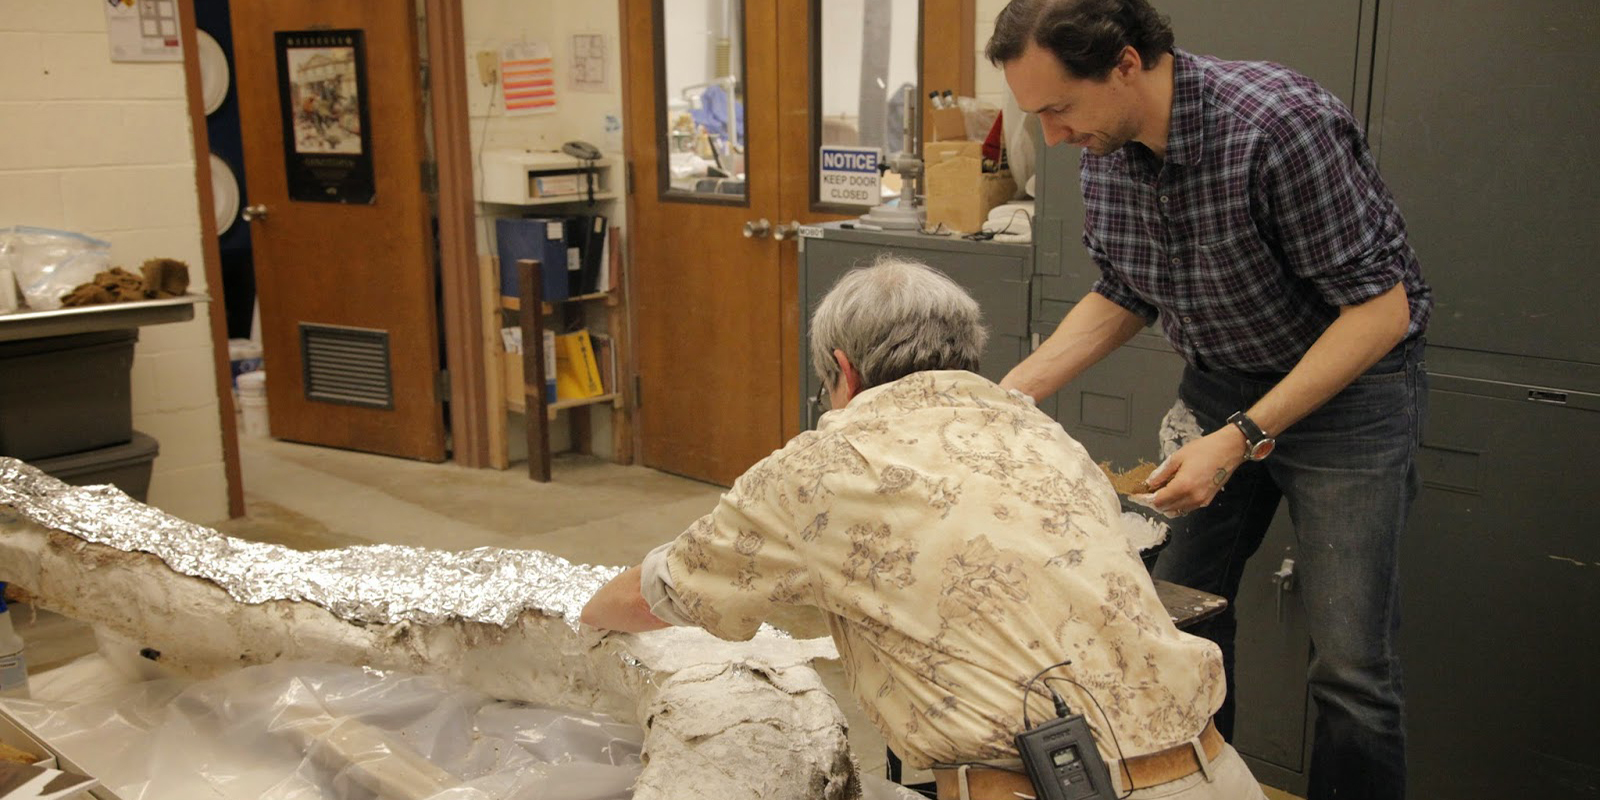 Two researchers cover the mammoth tusk in plaster